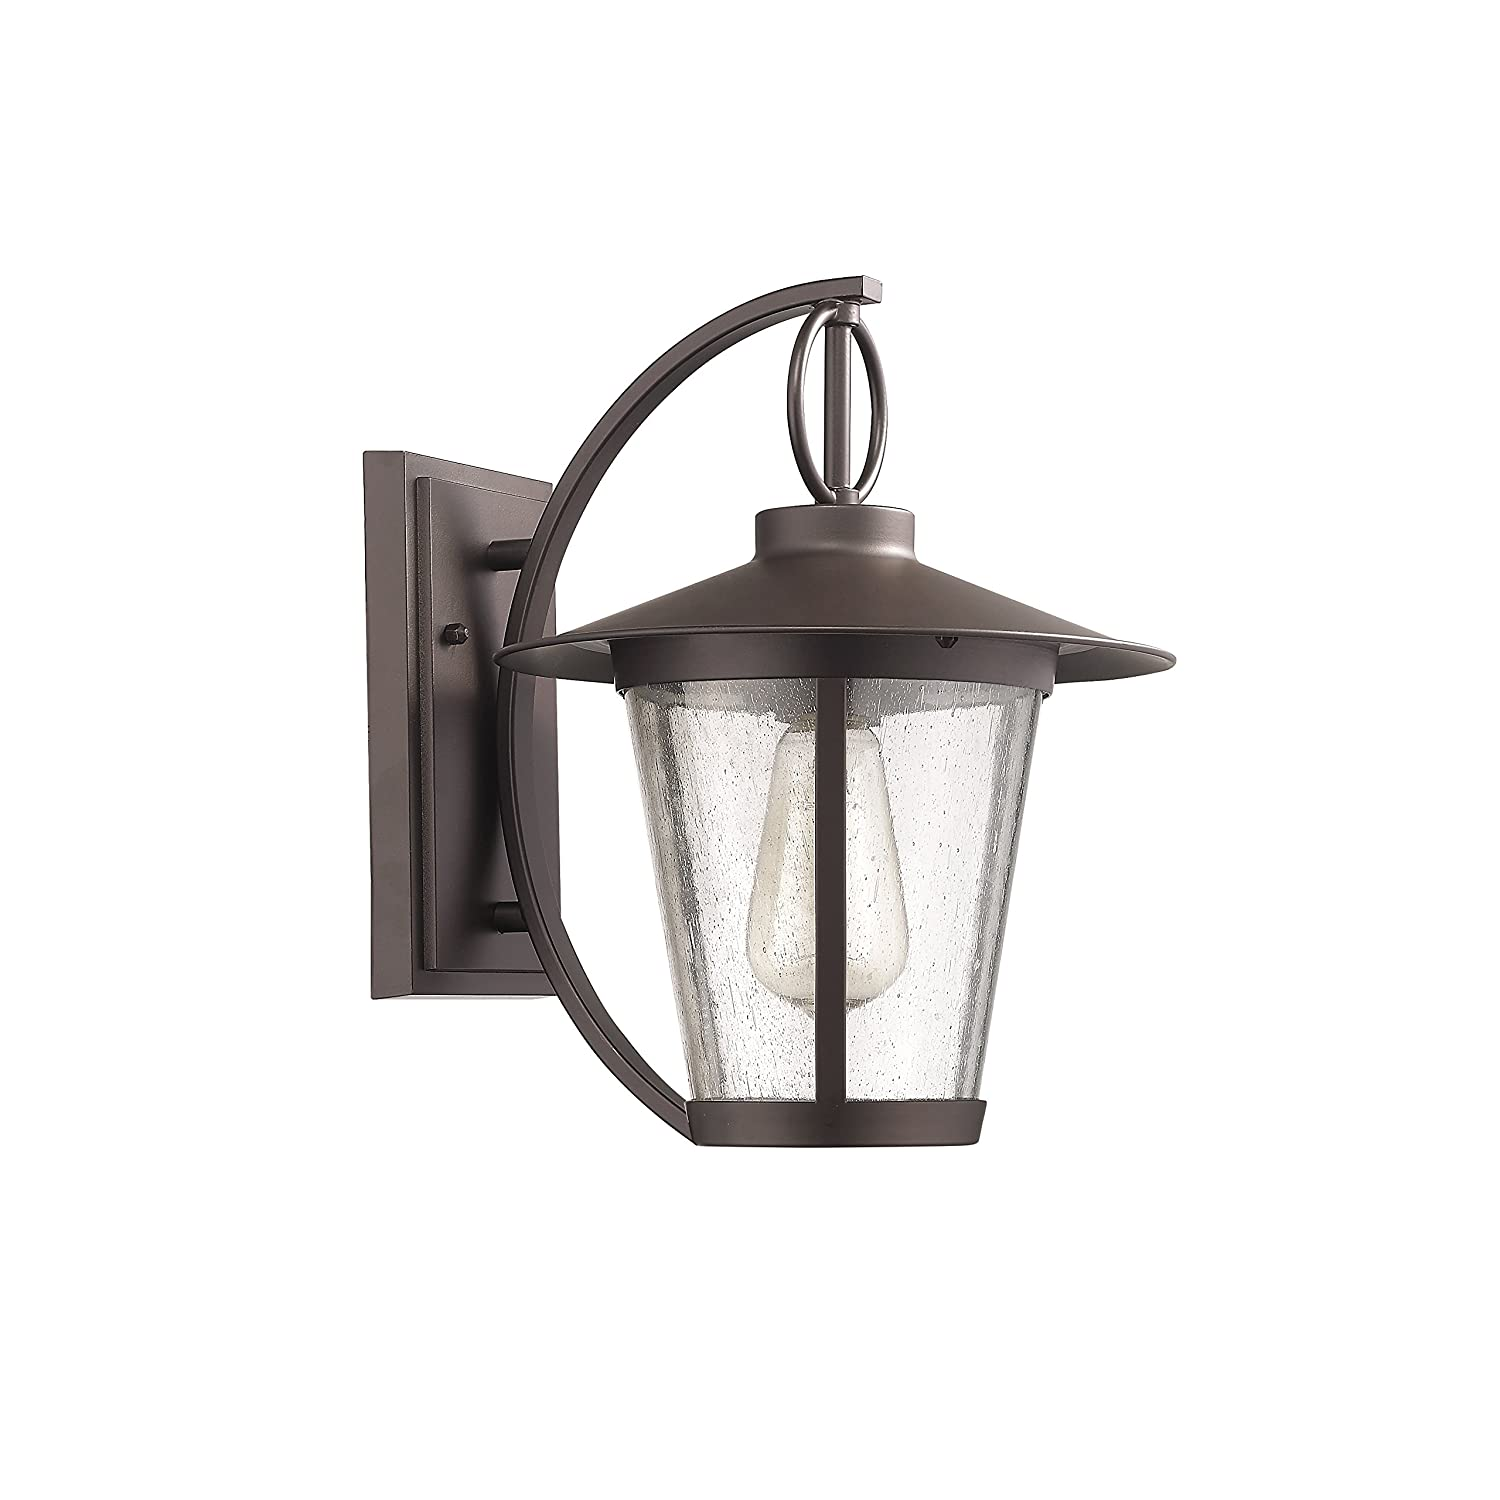 Chloe Lighting CH822046RB12-OD1 Transitional 1 Light Rubbed Bronze Outdoor Wall Sconce 12 Height by Chloe Lighting B0190V3R54